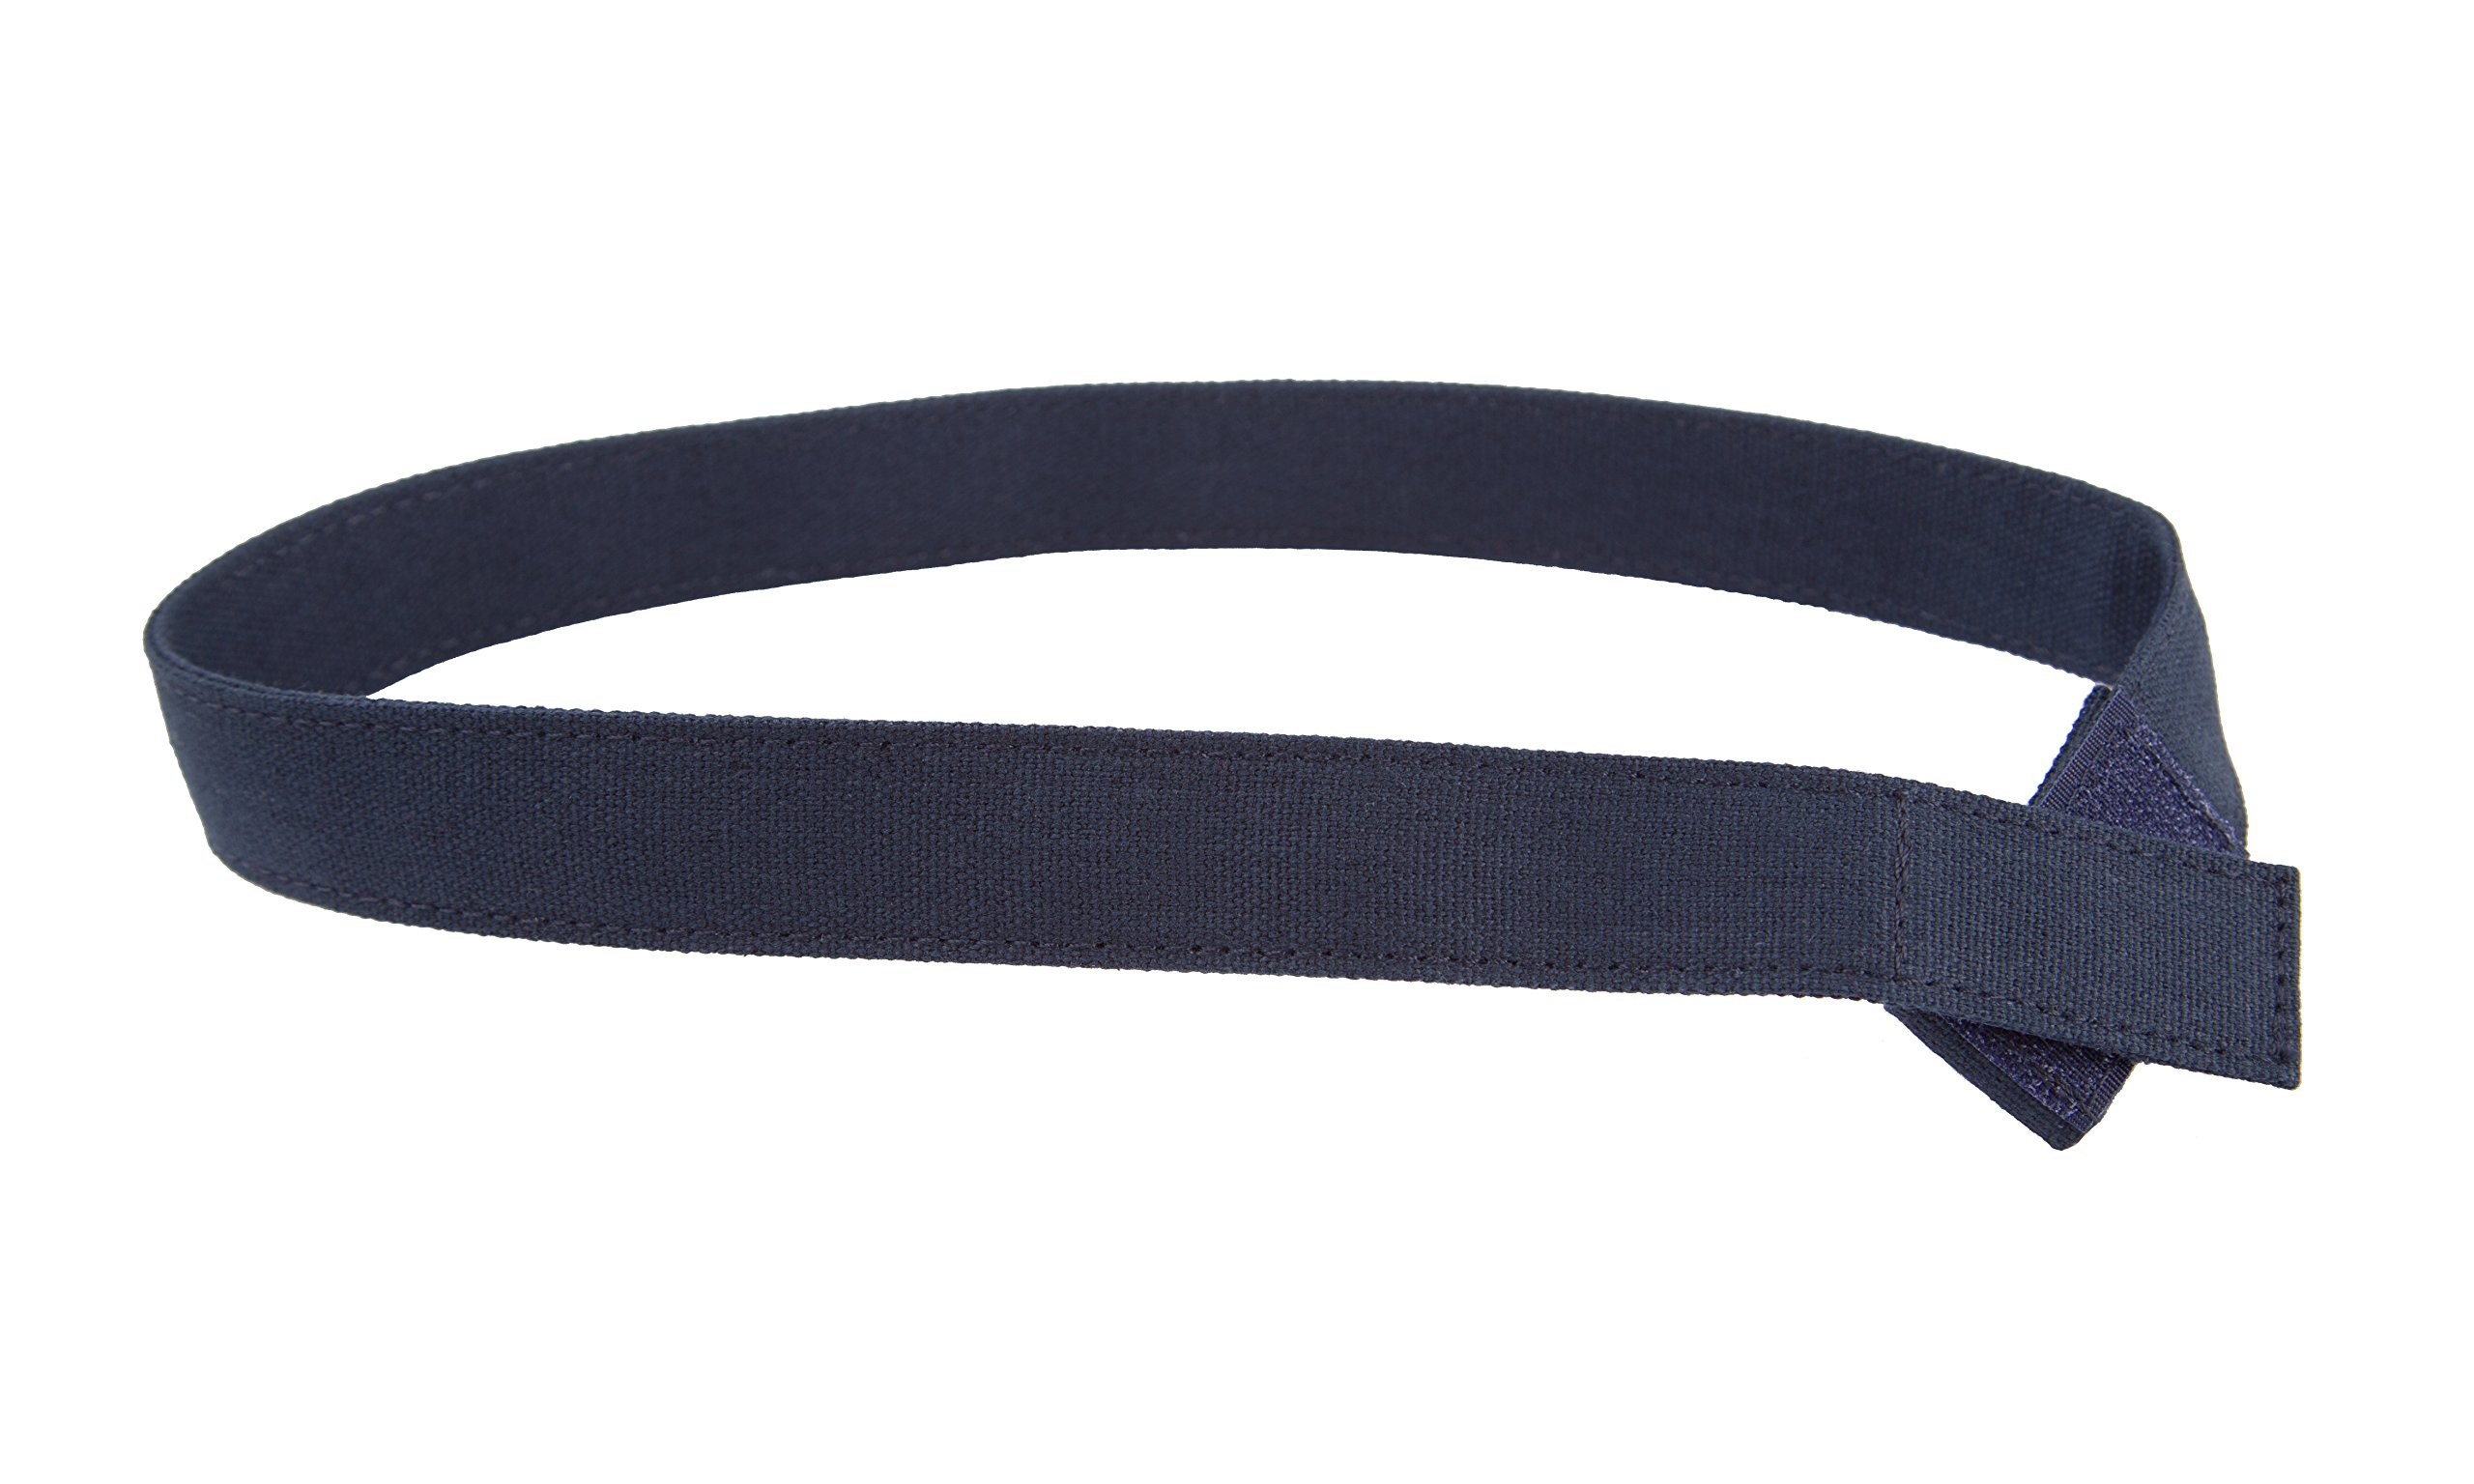 Myself Belts - Toddler and Kids Belt for Uniforms - Navy (3T)